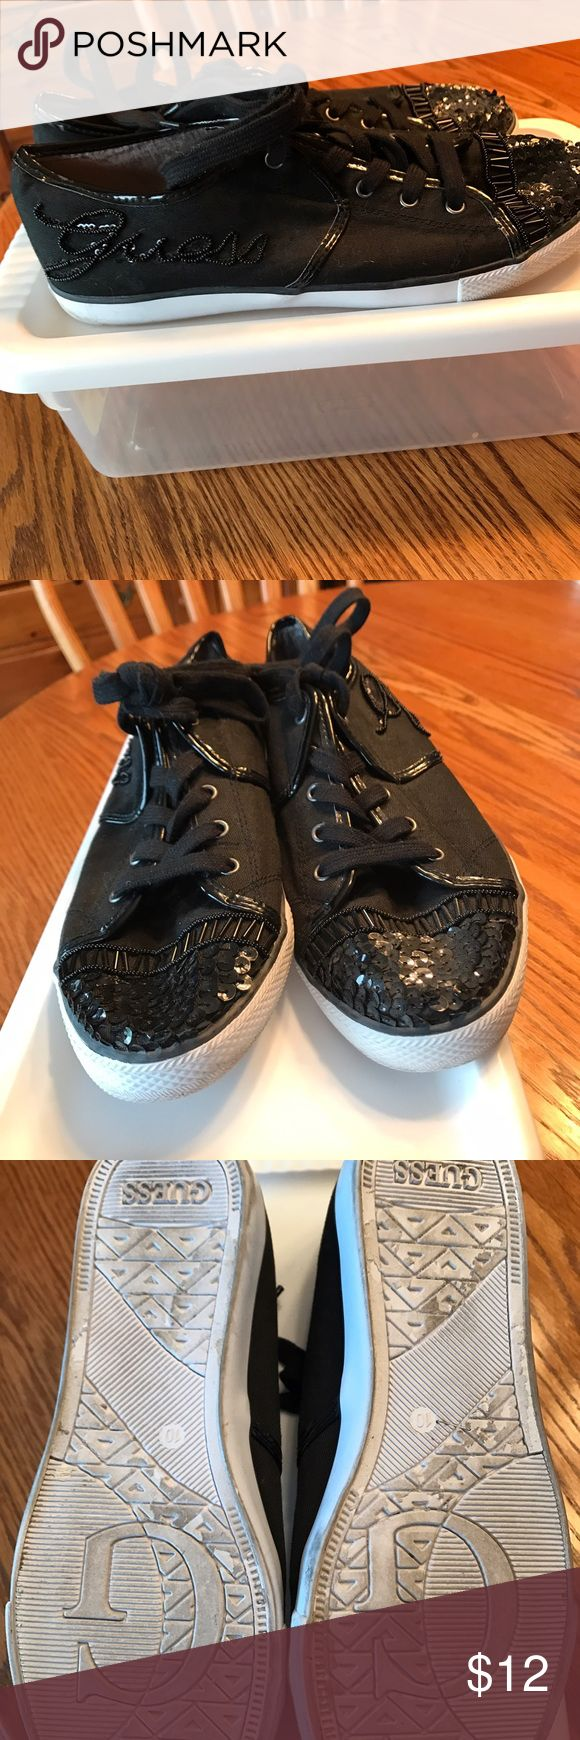 Guess women's tennis shoe Black Guess fashion tennis shoes, worn once, priced to sell. Do not have the box. Smog free home. Guess Shoes Sneakers